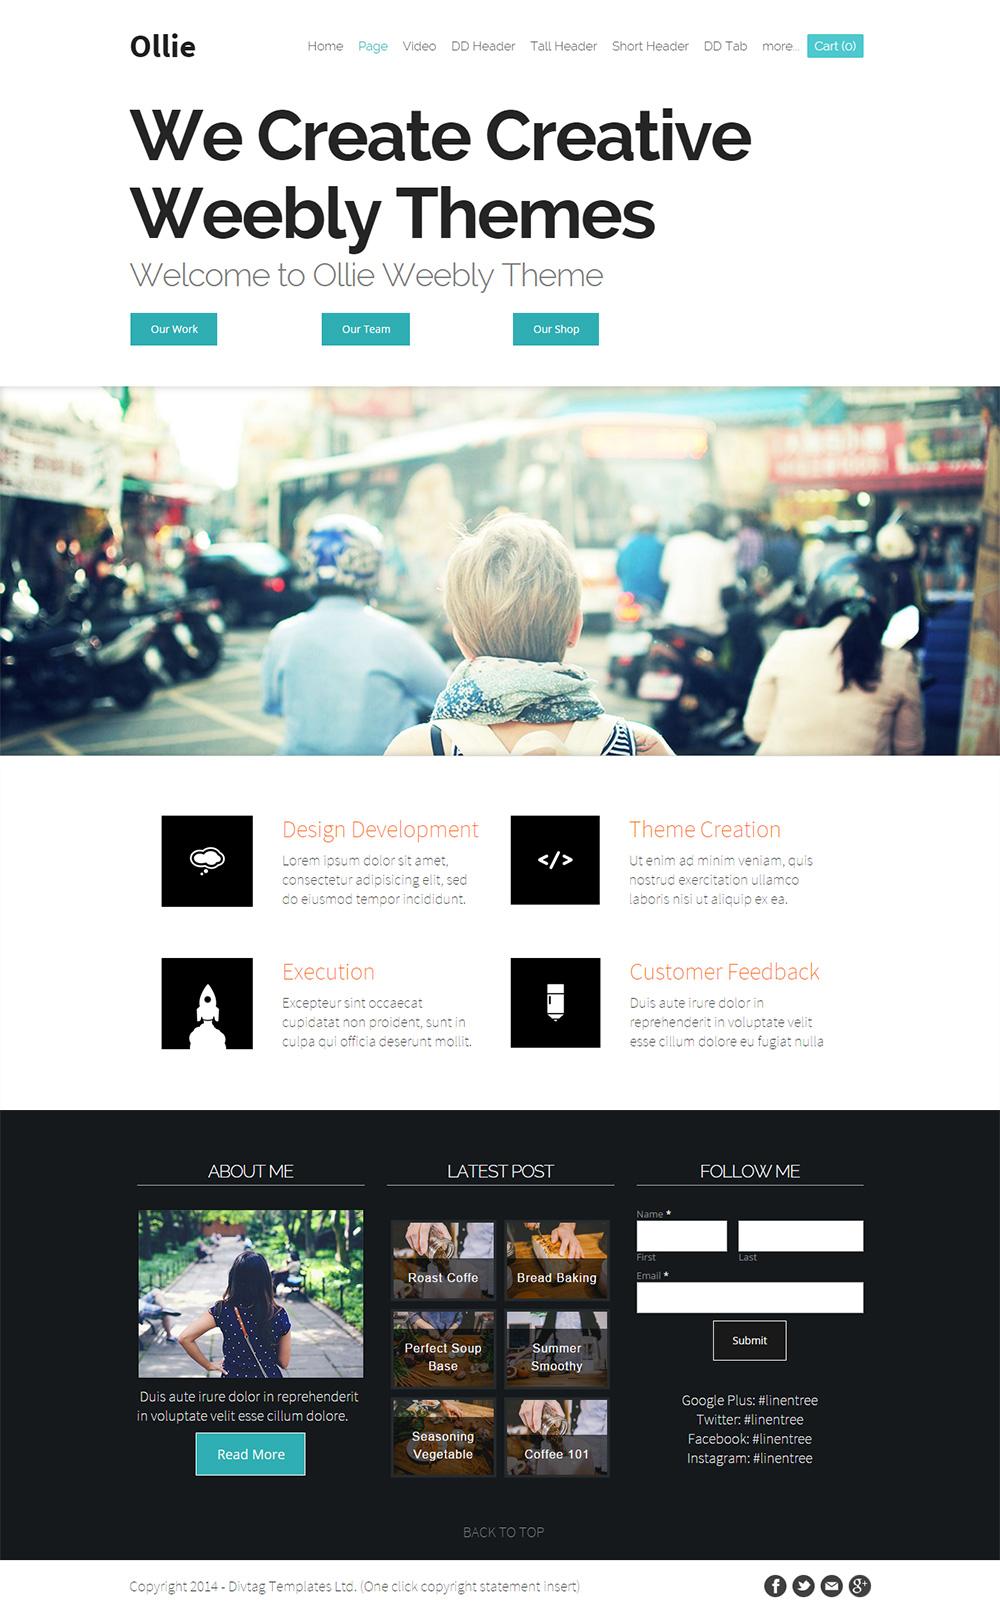 Premium Weebly Template - Ollie